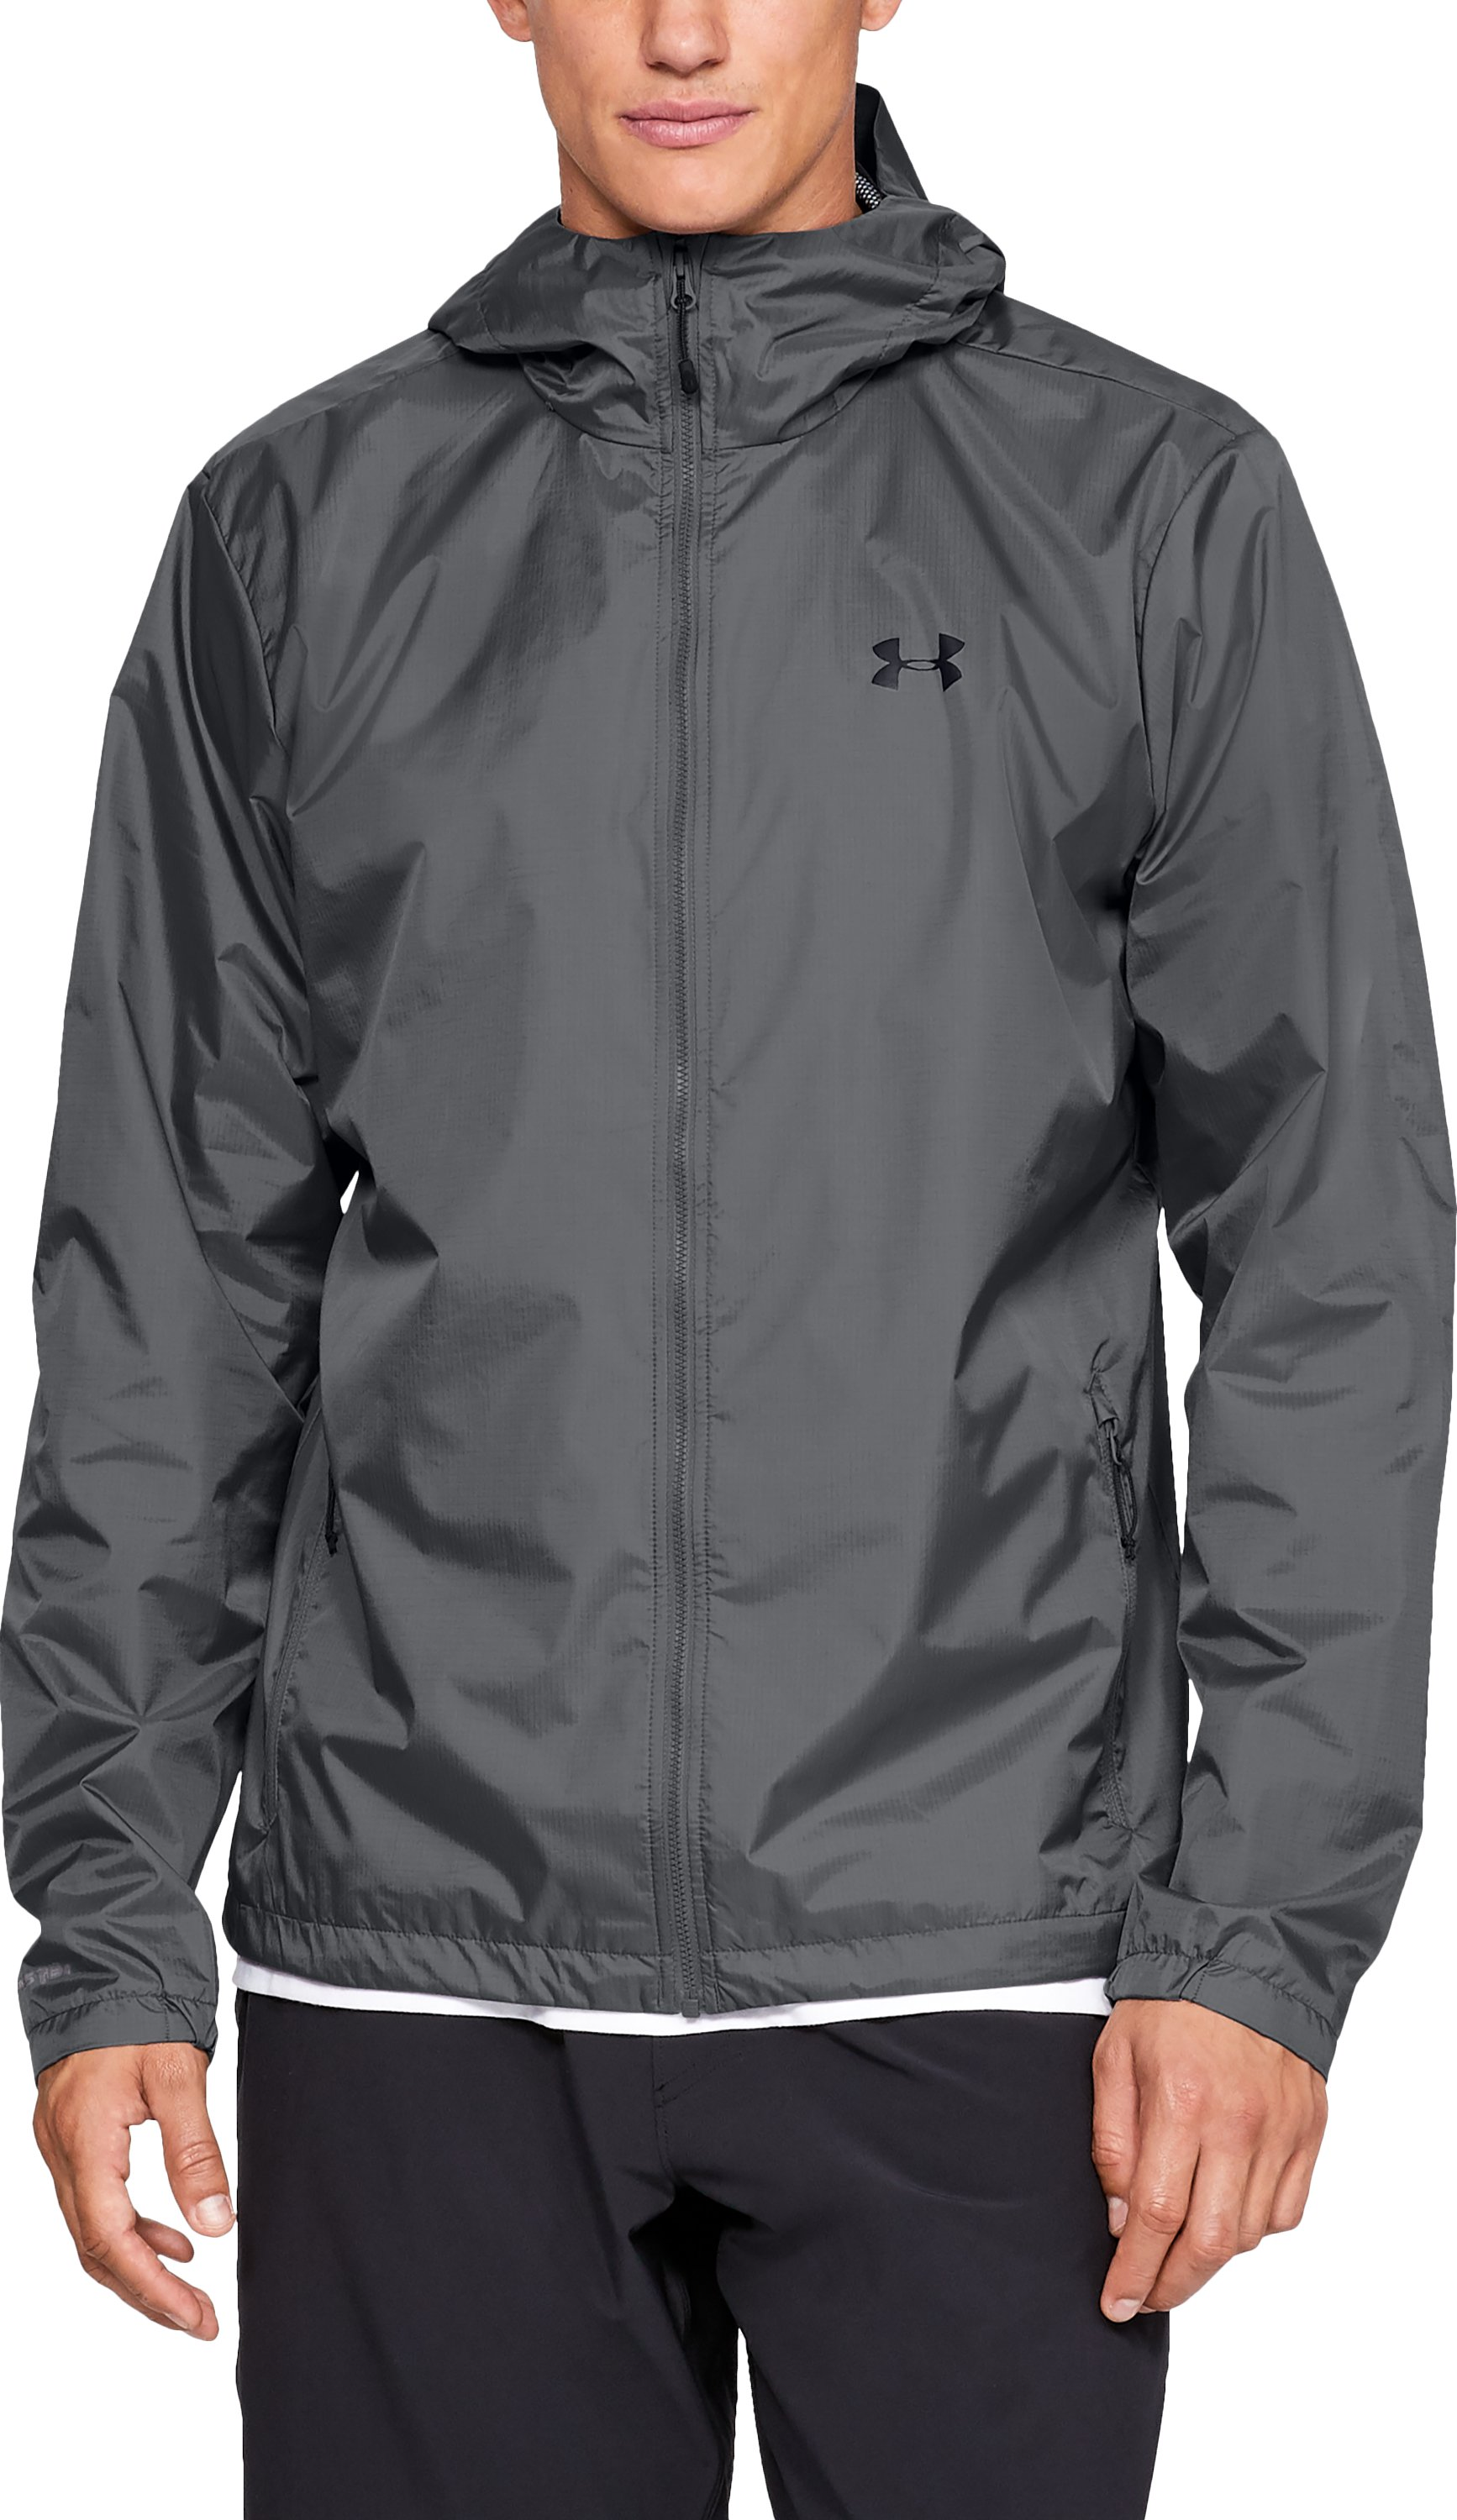 Men S Ua Forefront Rain Jacket Under Armour Hk